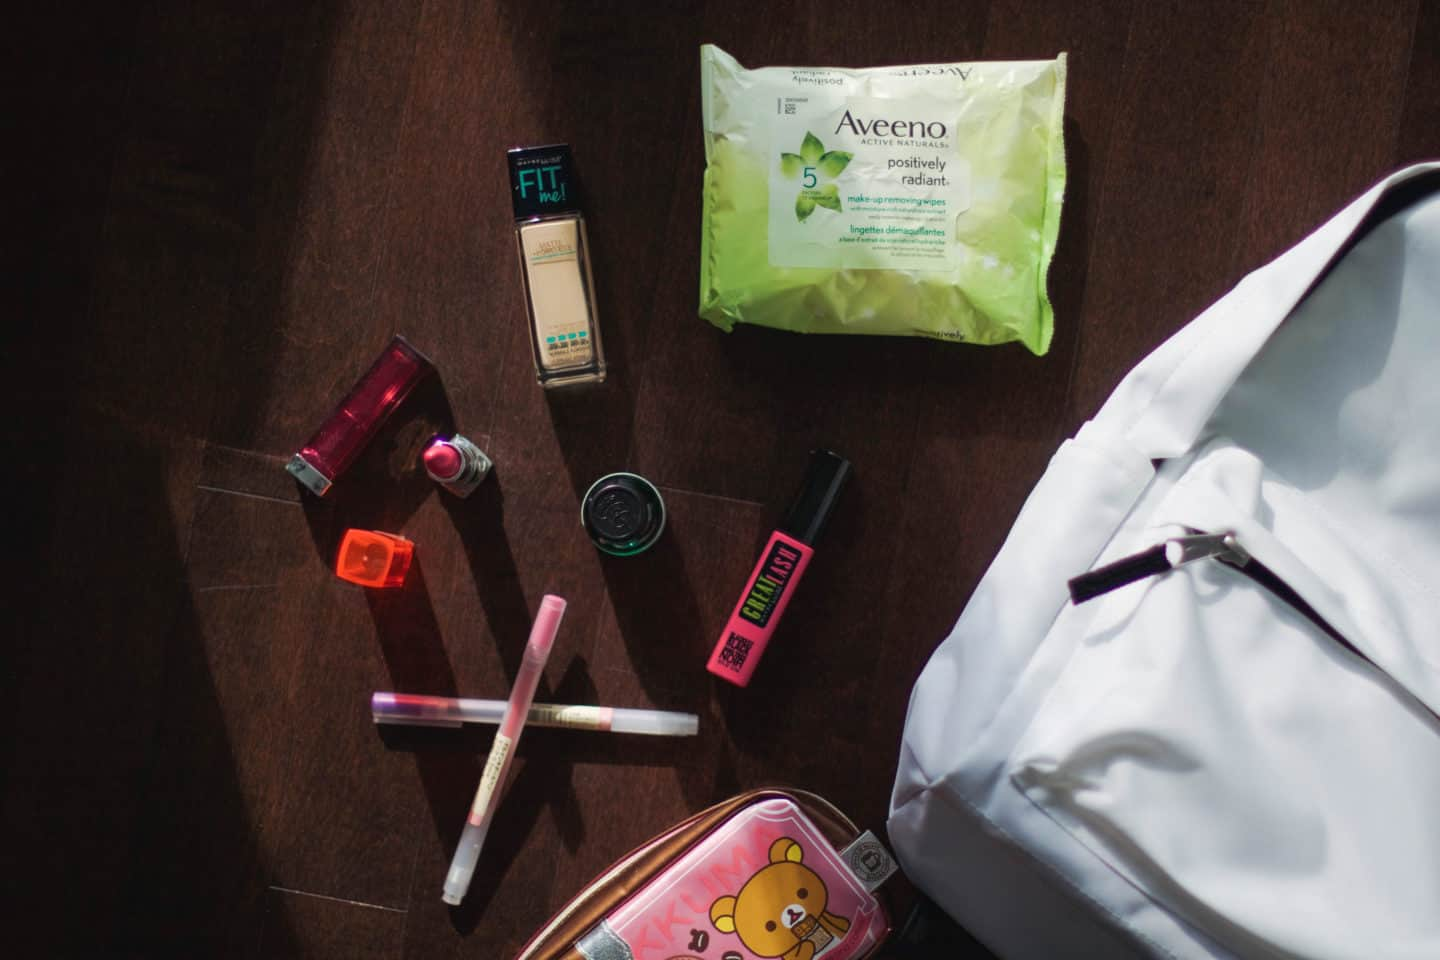 Back-to-school fashion & beauty essentials for college/university students